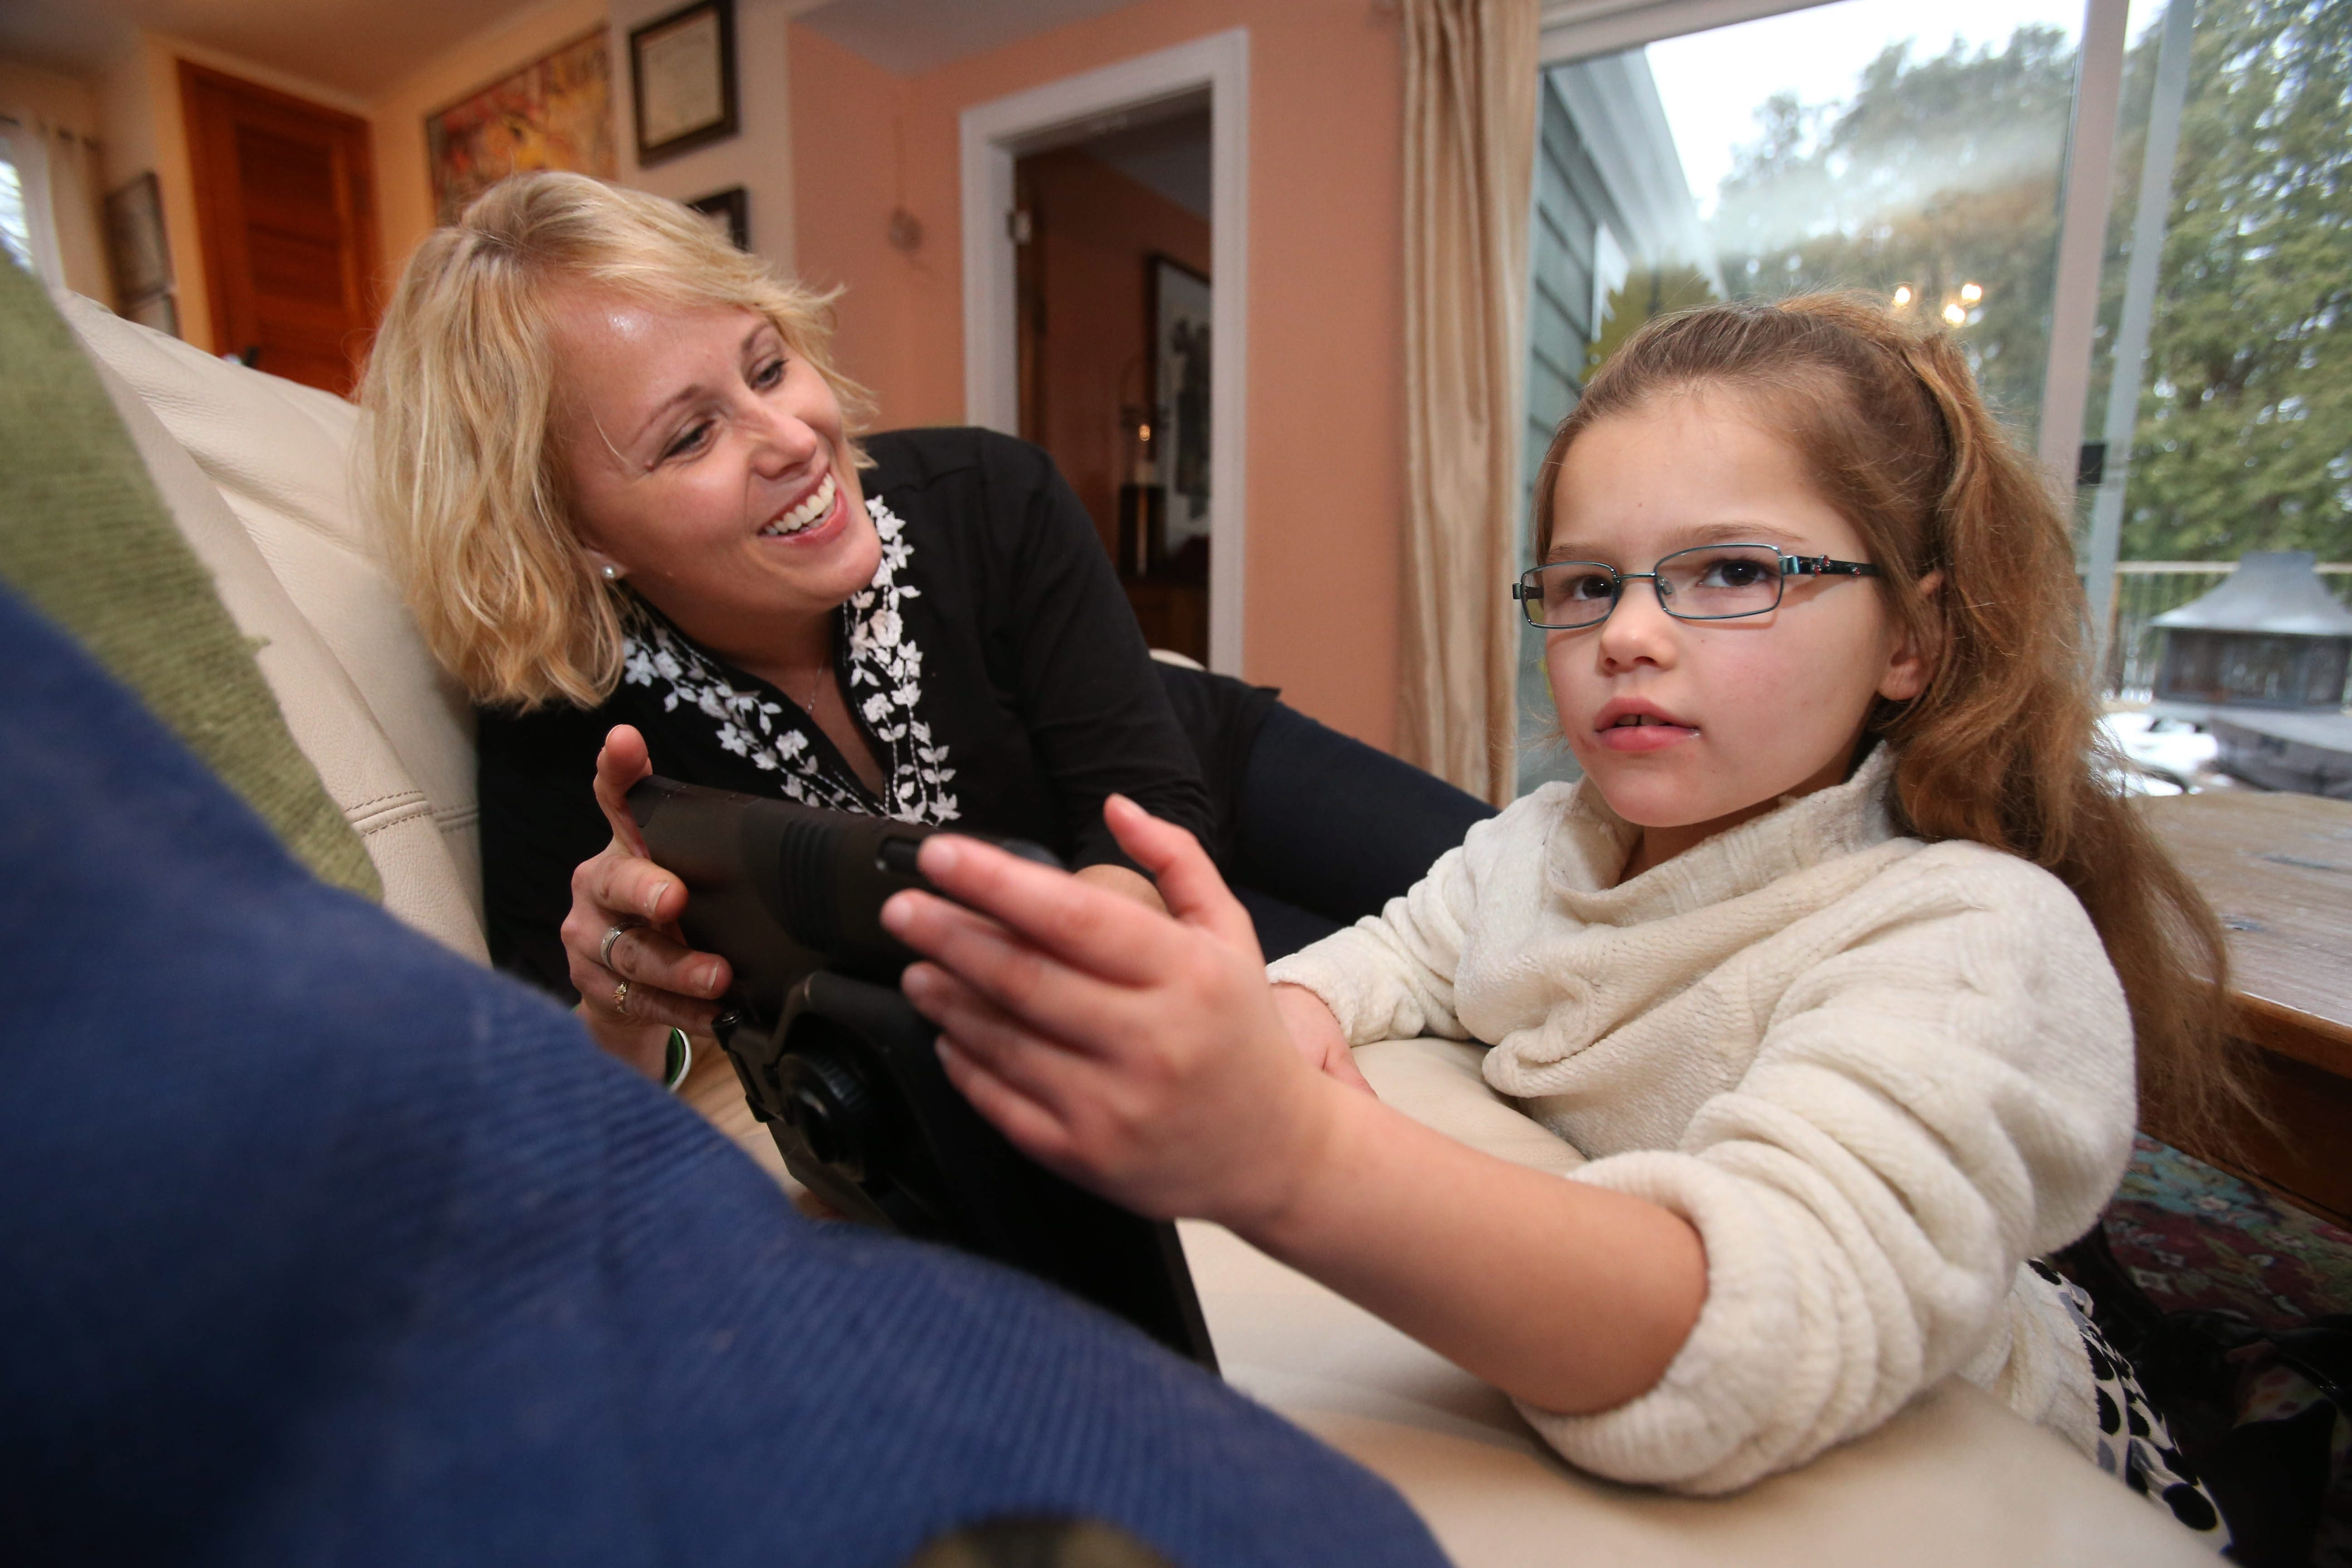 Wendy Conte spends time with 8-year-old Anna, who has suffered epileptic seizures since she was 2 months old.